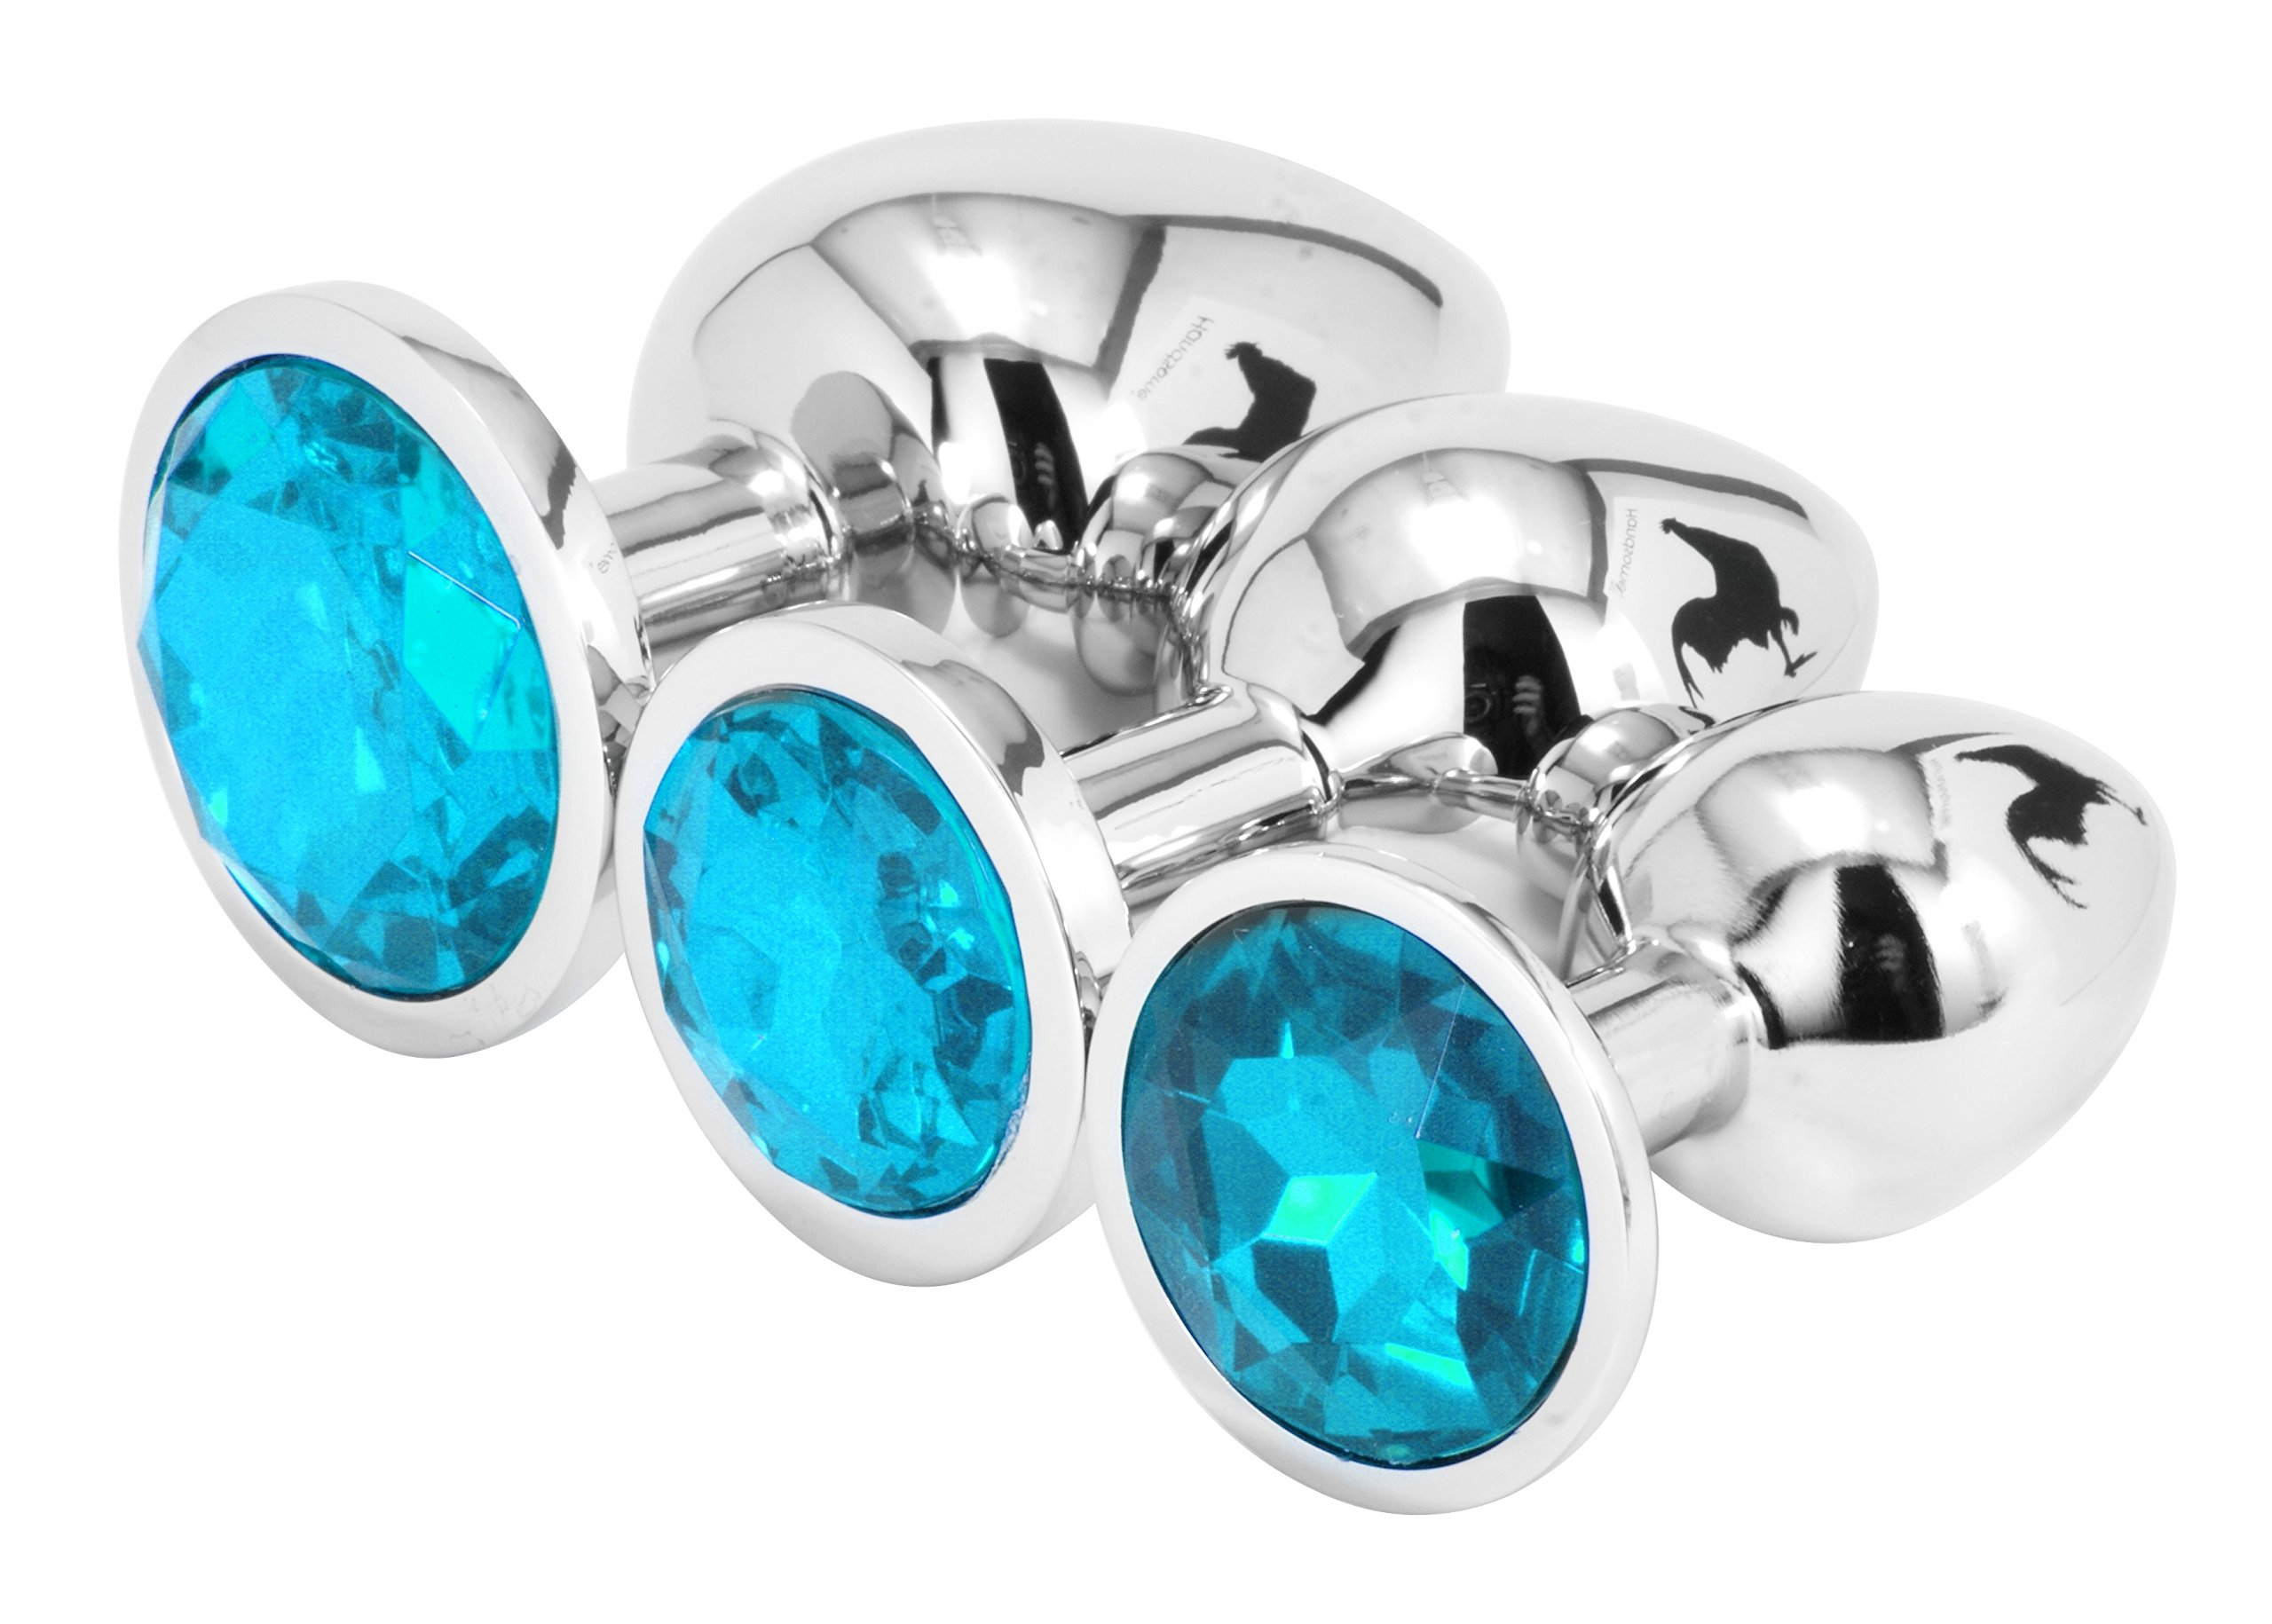 Handsome Cock Jewelled Butt Plug Set, Turquoise